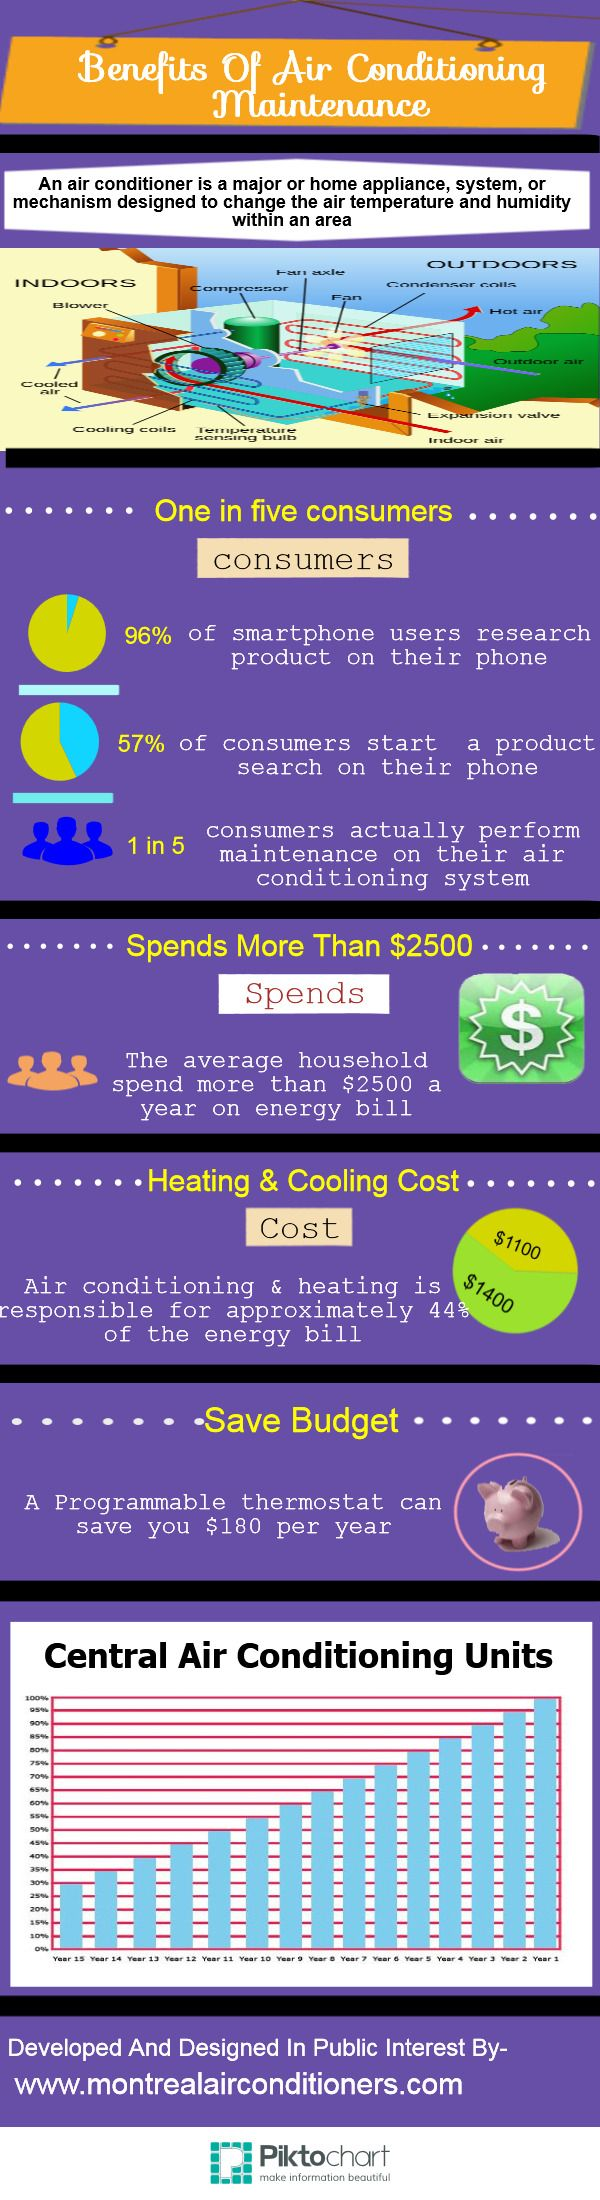 15 best images about hvac fun facts on pinterest for What is the best heating system for a house